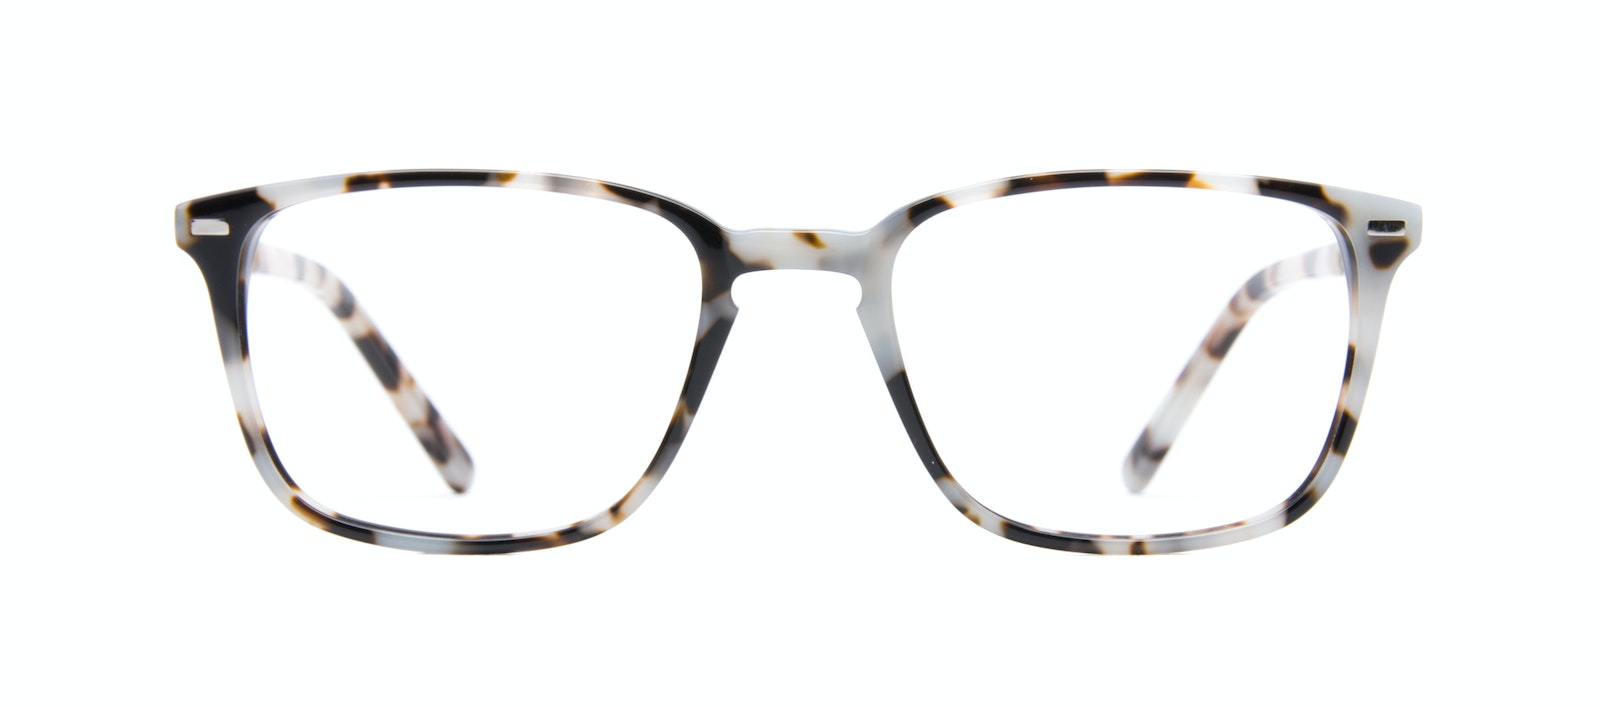 370b6a3f5976 ... Affordable Fashion Glasses Rectangle Eyeglasses Men Sharp Stone Front  ...